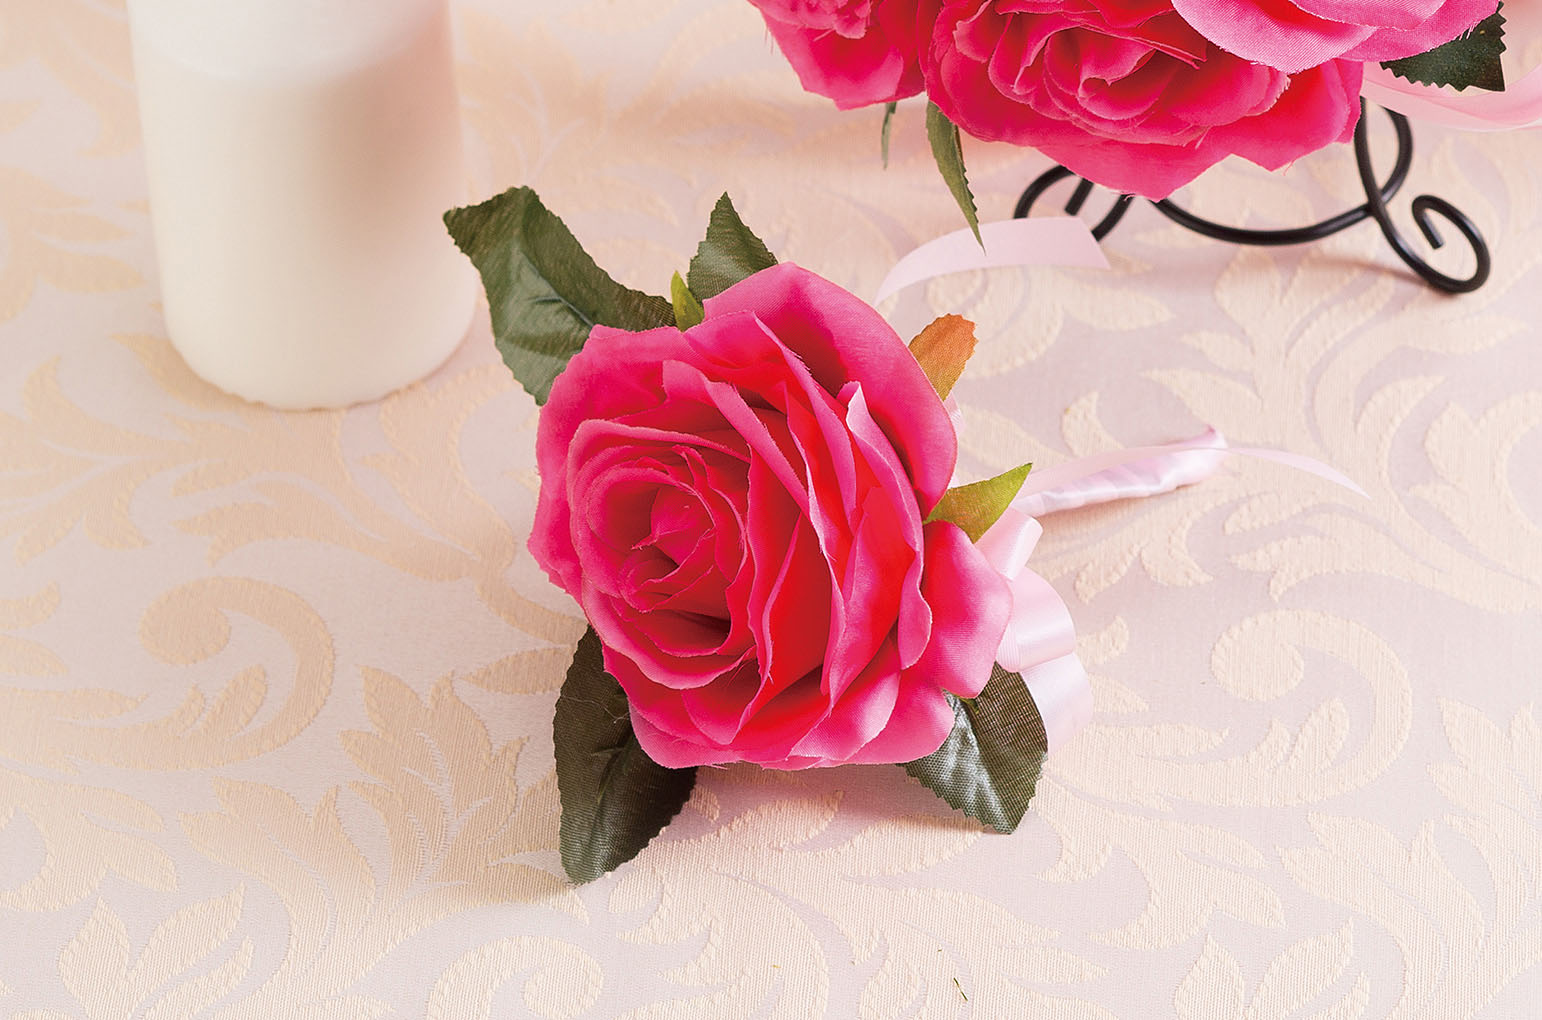 Silk bouquet Hot pinkシルクブーケ ホットピンク